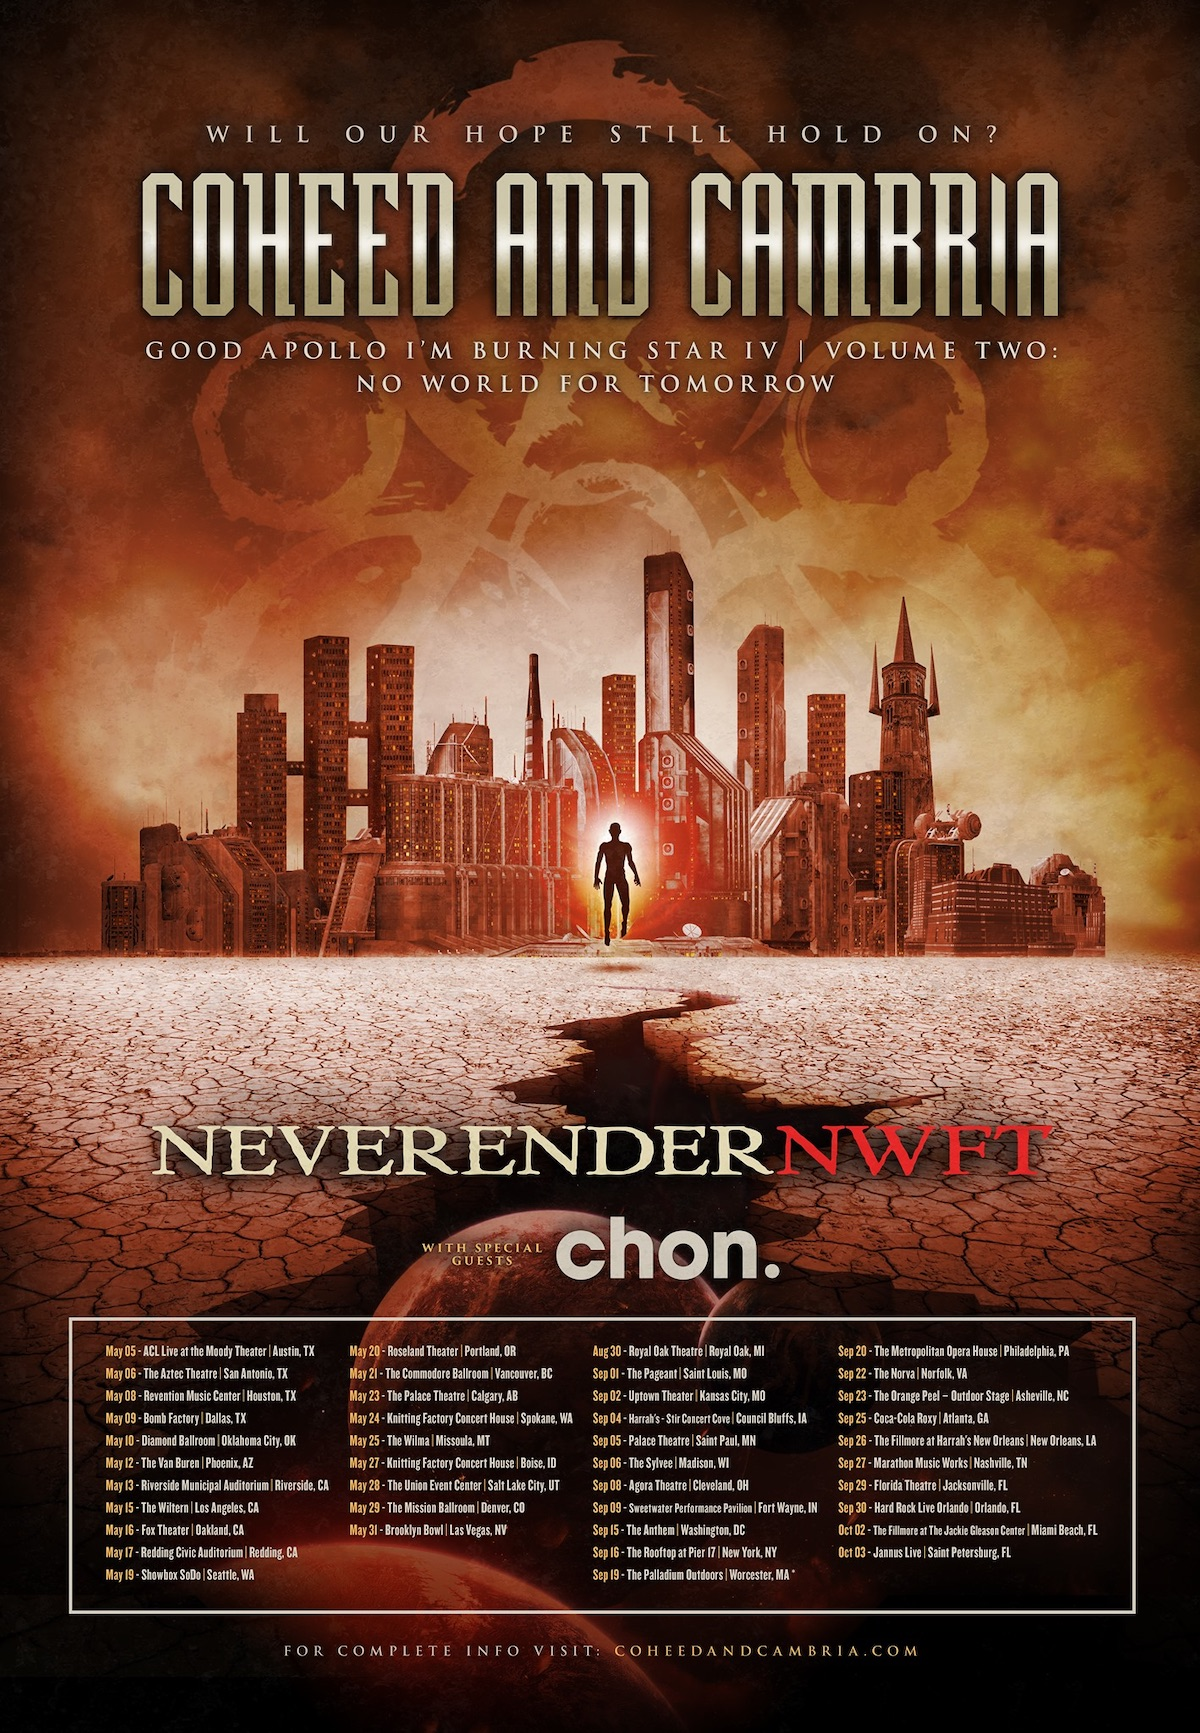 Coheed and Cambria 2020 tour poster